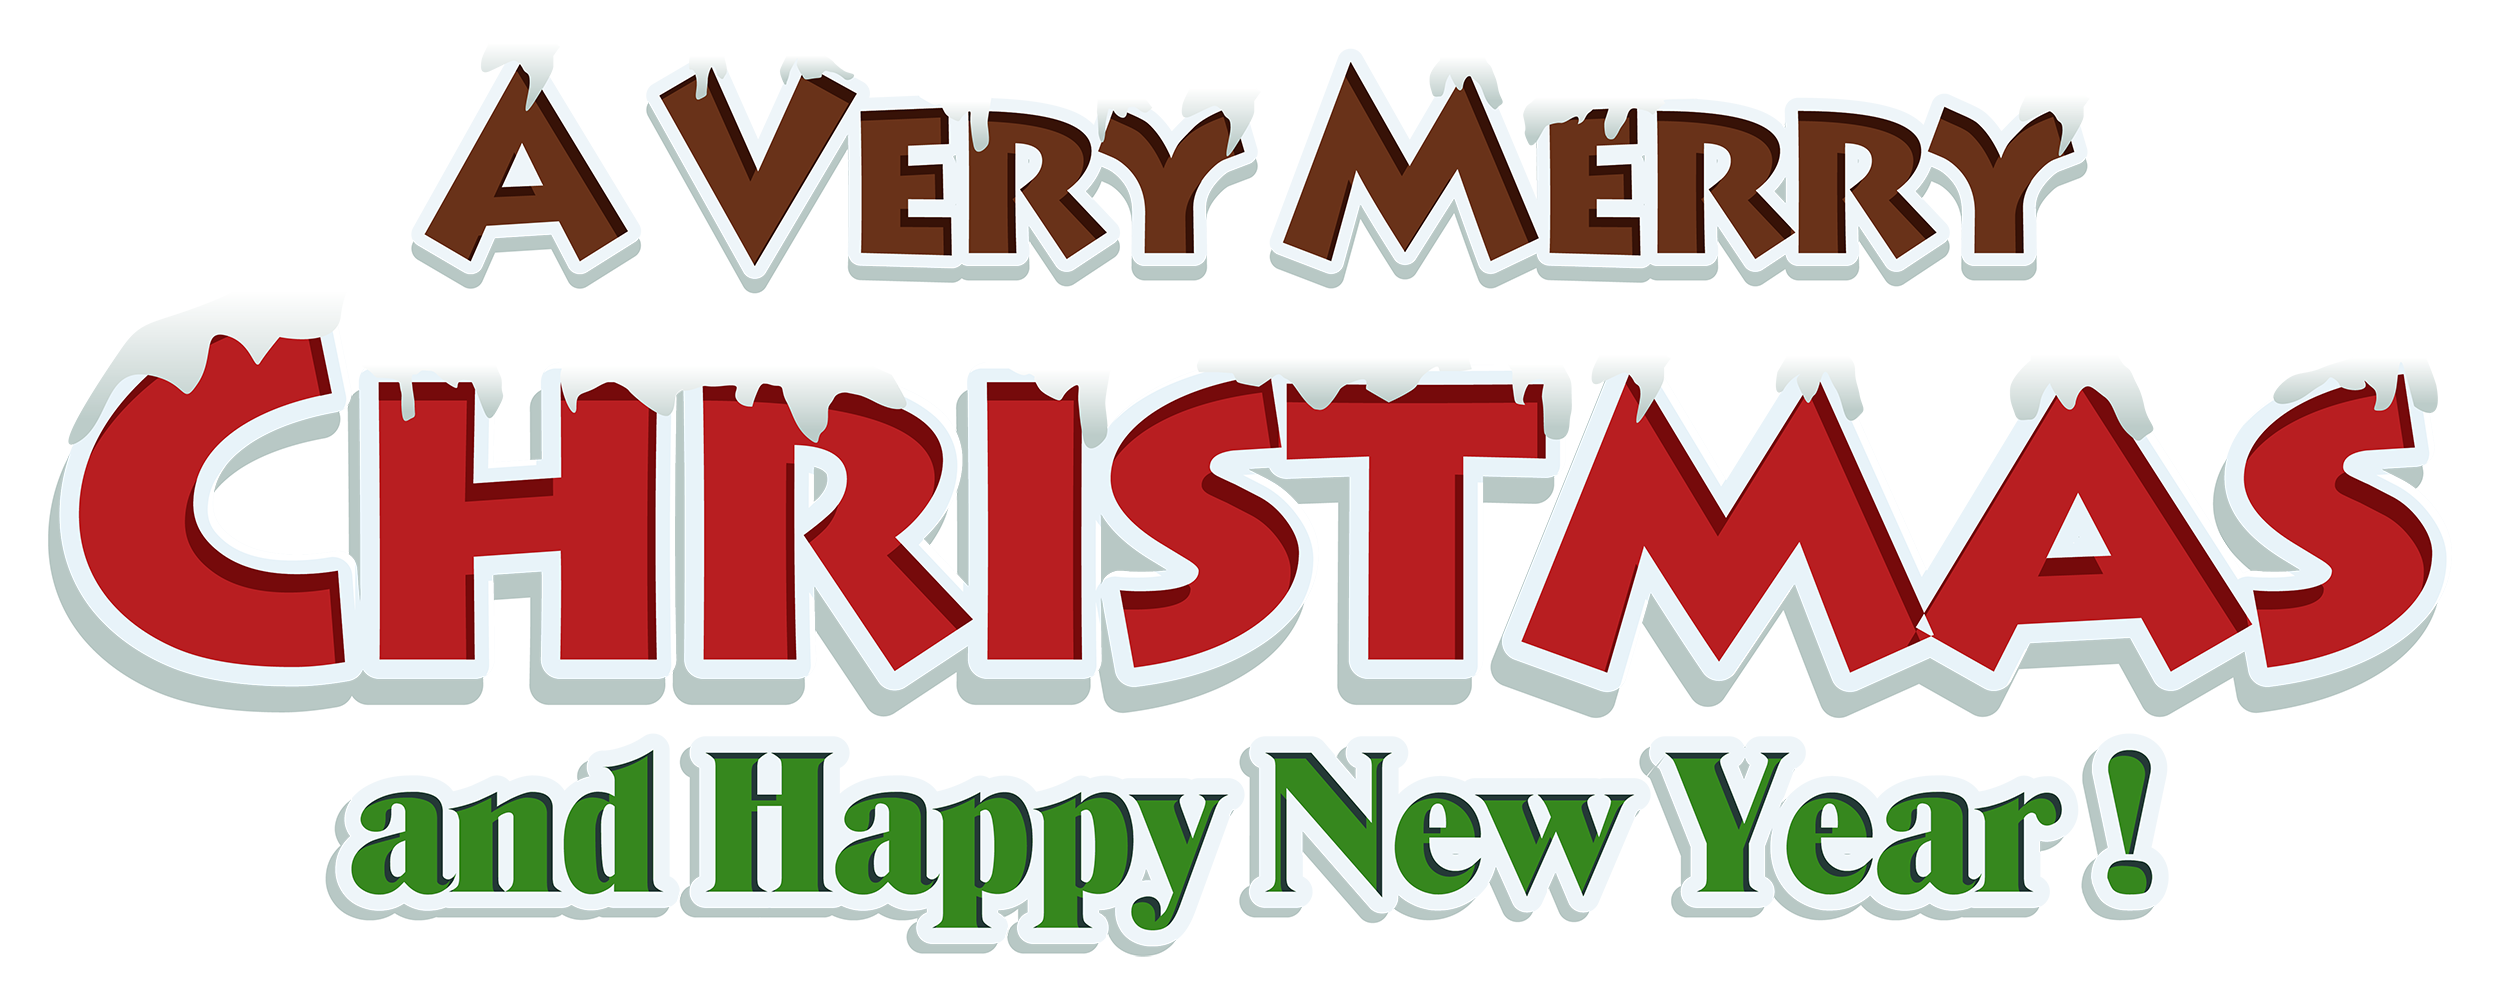 Have A Very Merry Christmas From Cosmetic Gyn Center Merry Christmas And Happy New Year Christmas Clipart Happy Merry Christmas